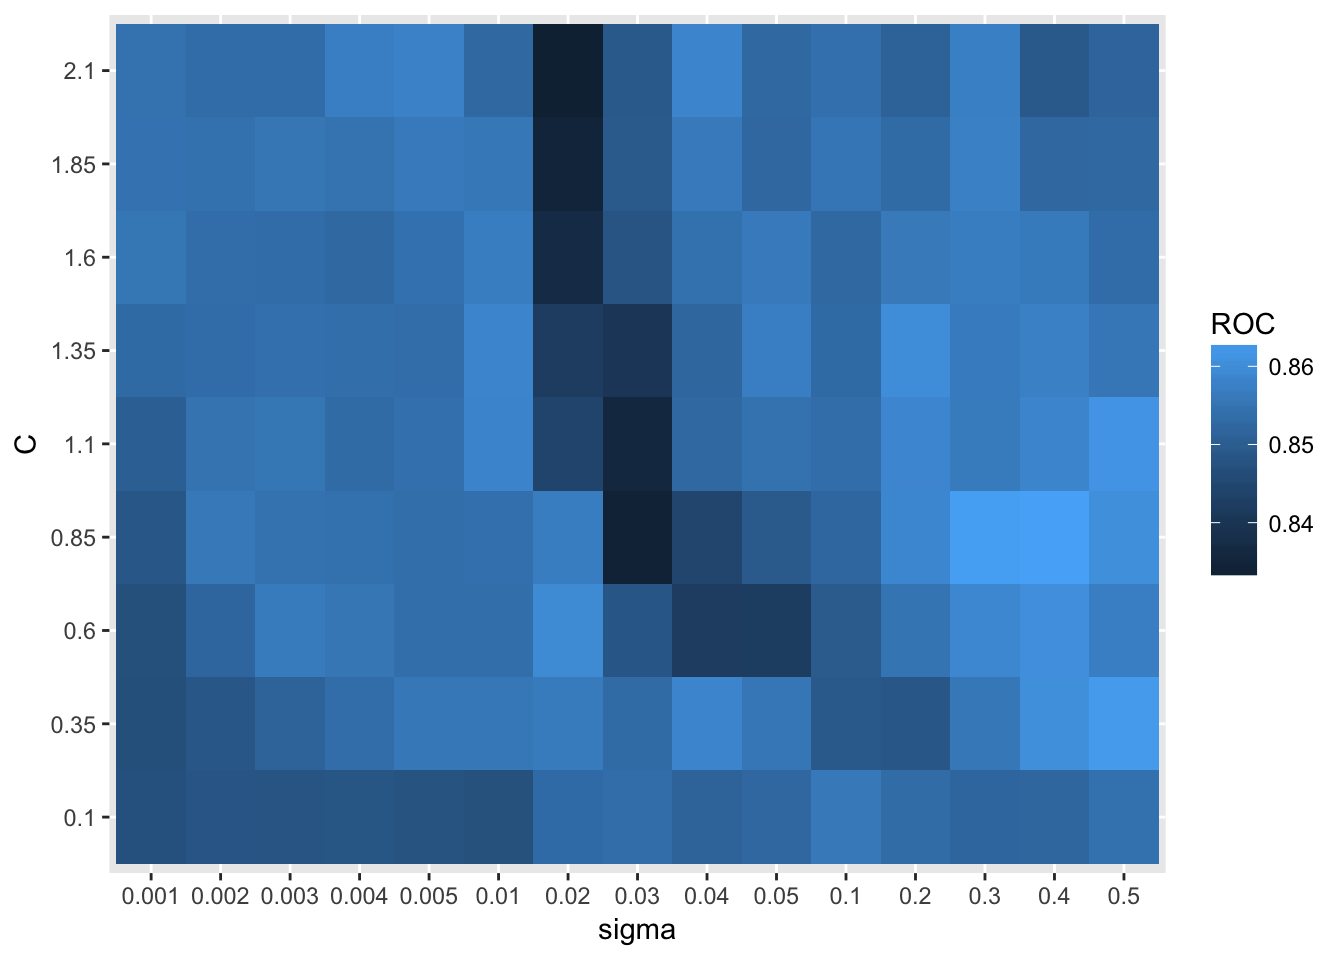 Tile plot for parameter search